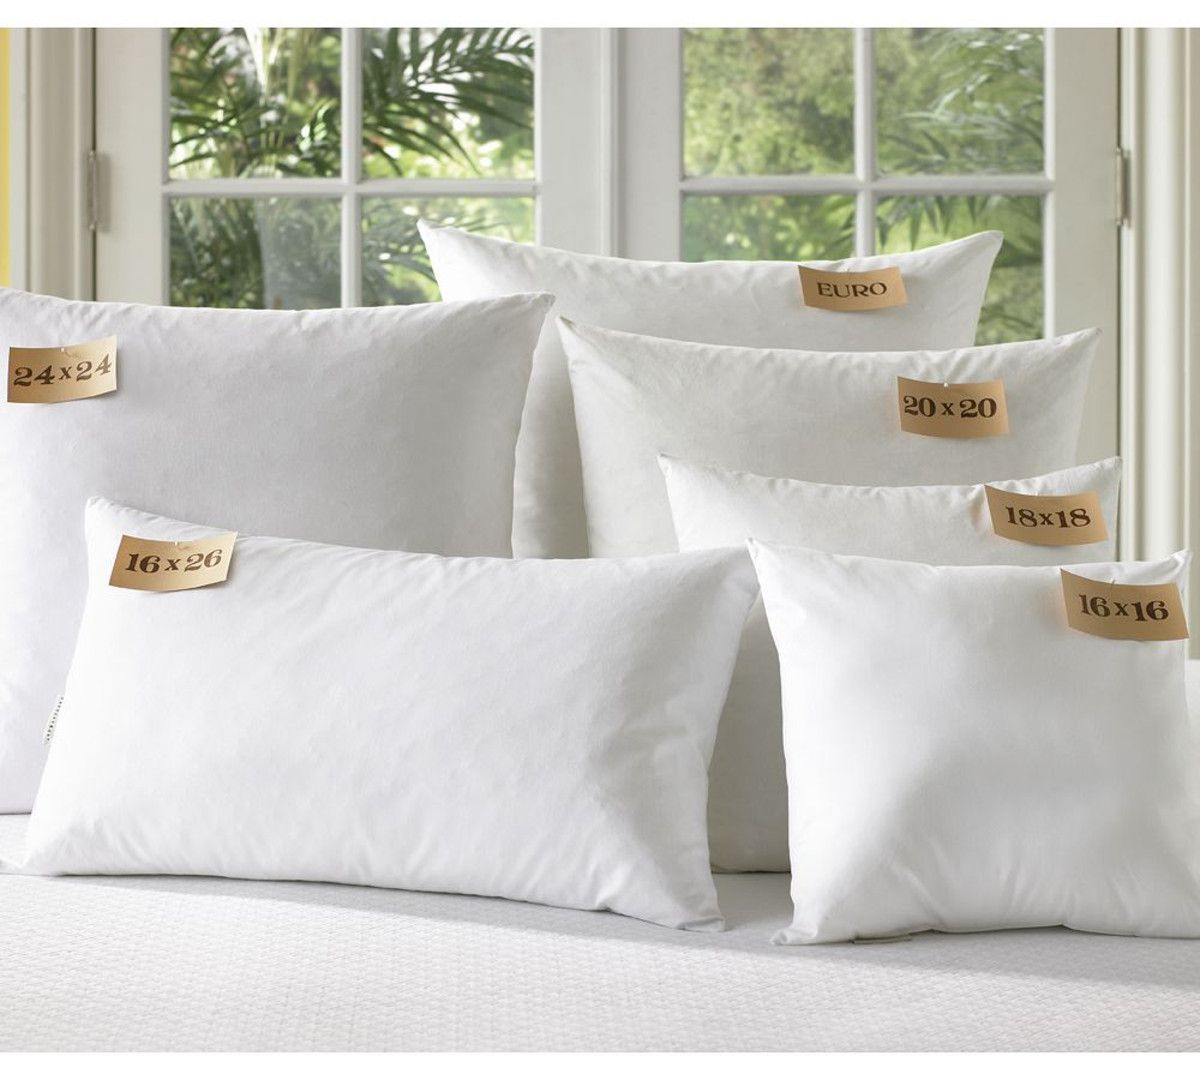 Pottery Barn Pillow Inserts Beauteous Featherdown Blend Pillow & Cushion Inserts  Pottery Barn Au Design Decoration